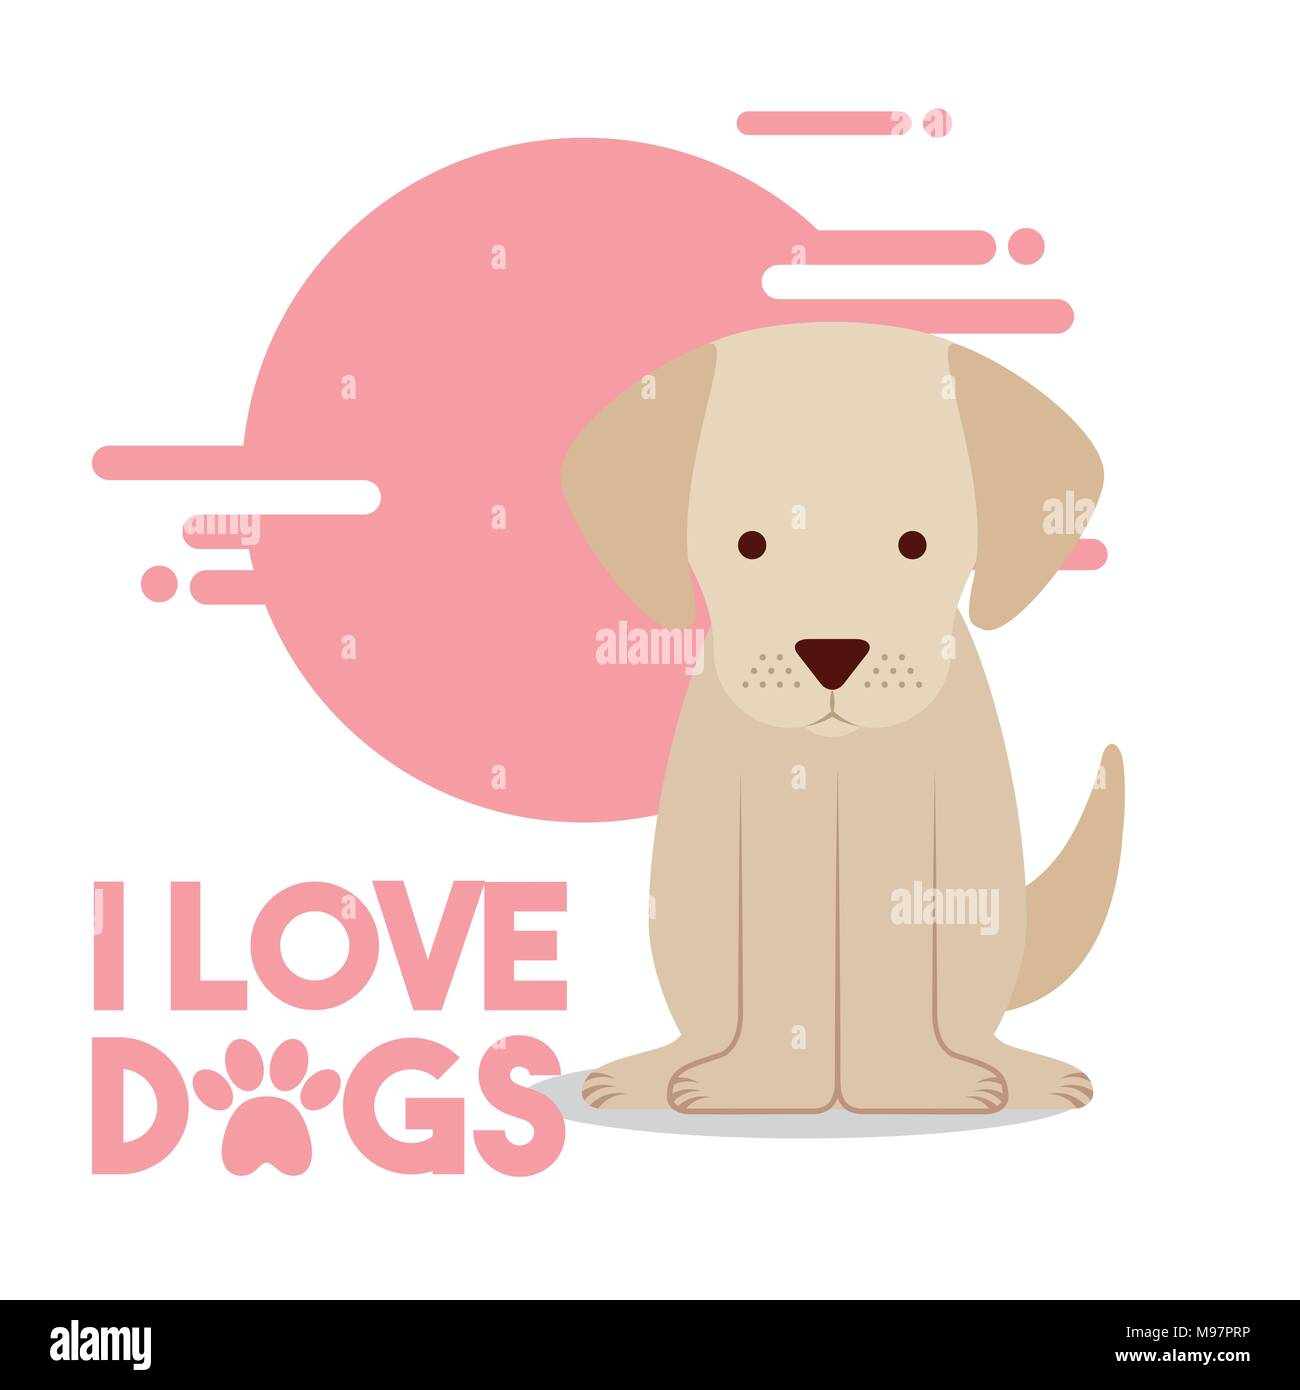 love dog pet - Stock Image